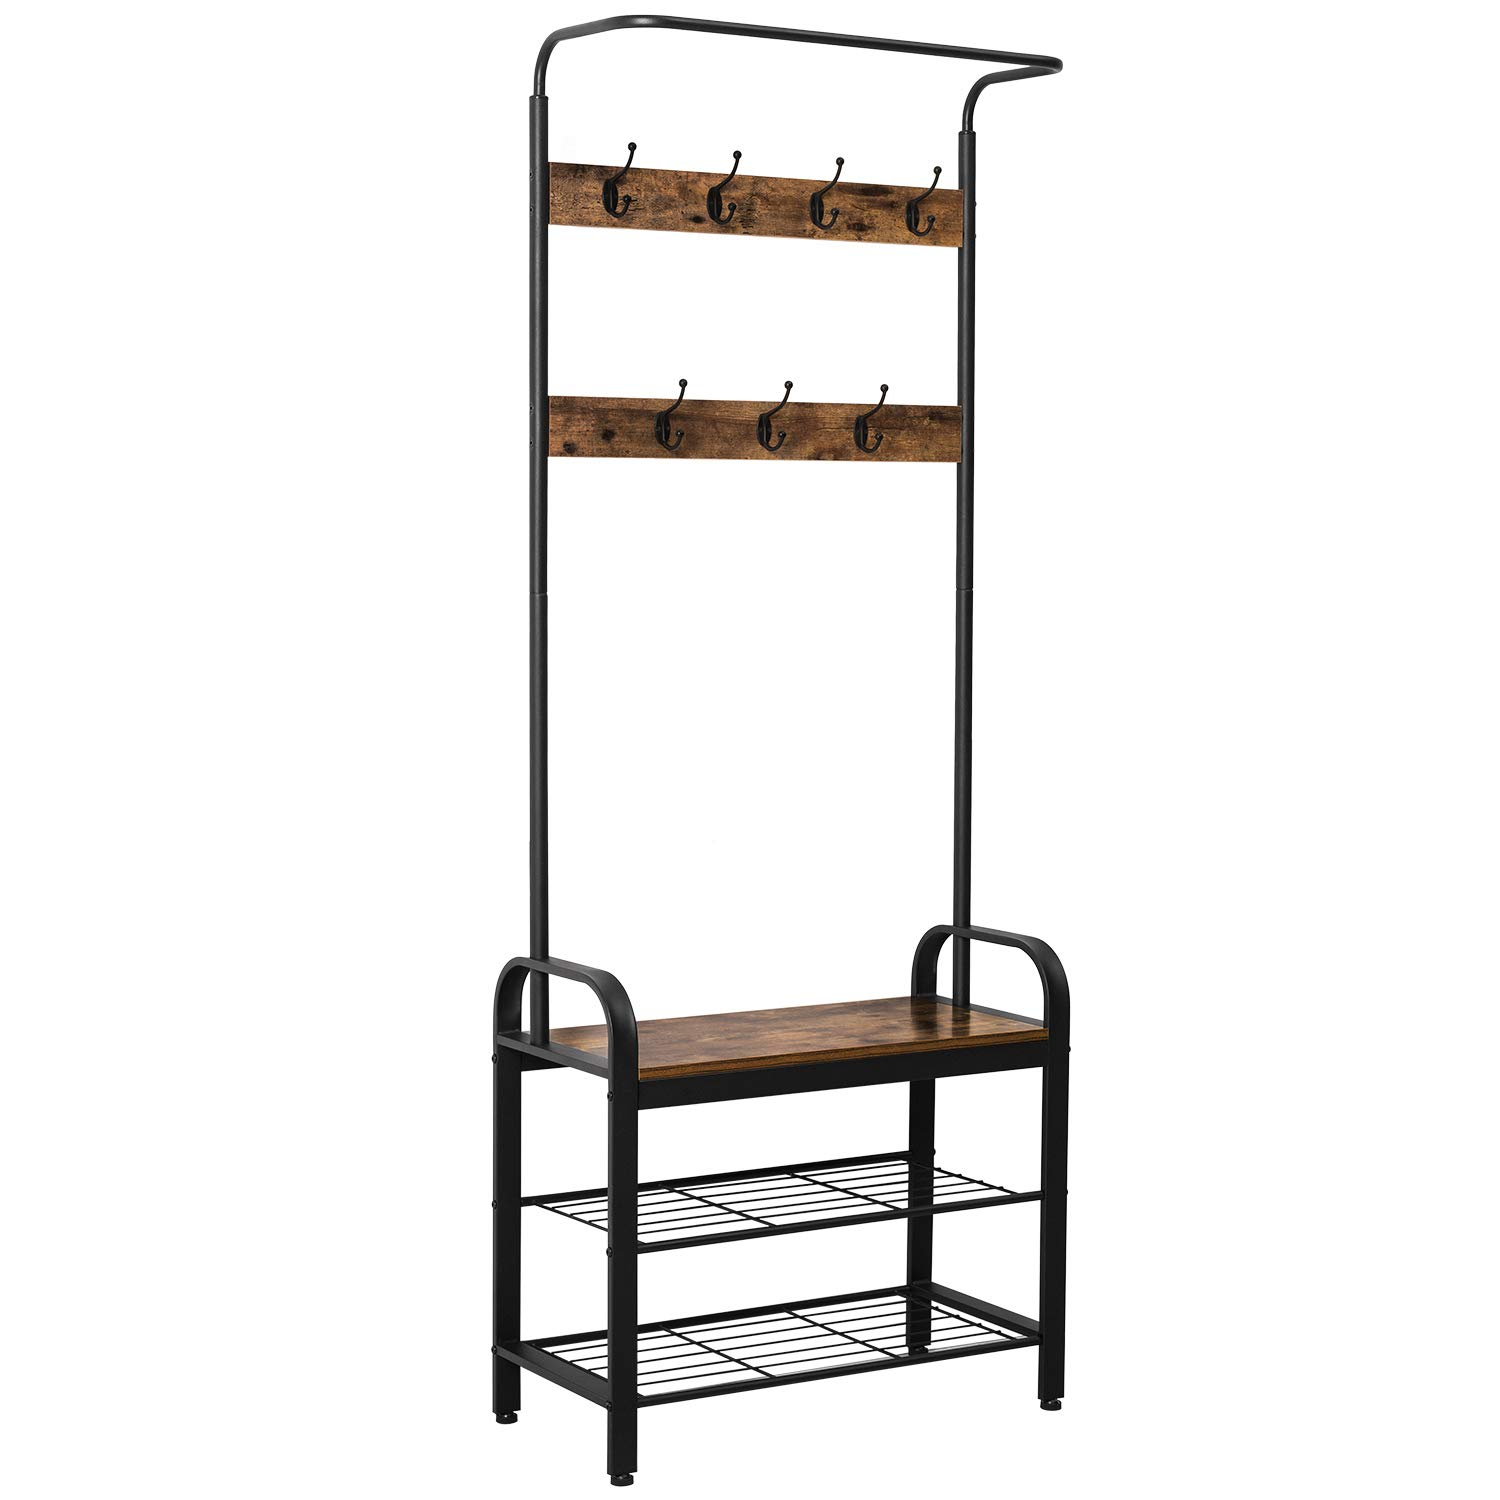 IRONCK Coat Rack Free Standing Hall Tree, Entryway Organizer with Entryway Bench, Vintage Industrial Coat Stand, 3 in 1 Design, Easy Assembly